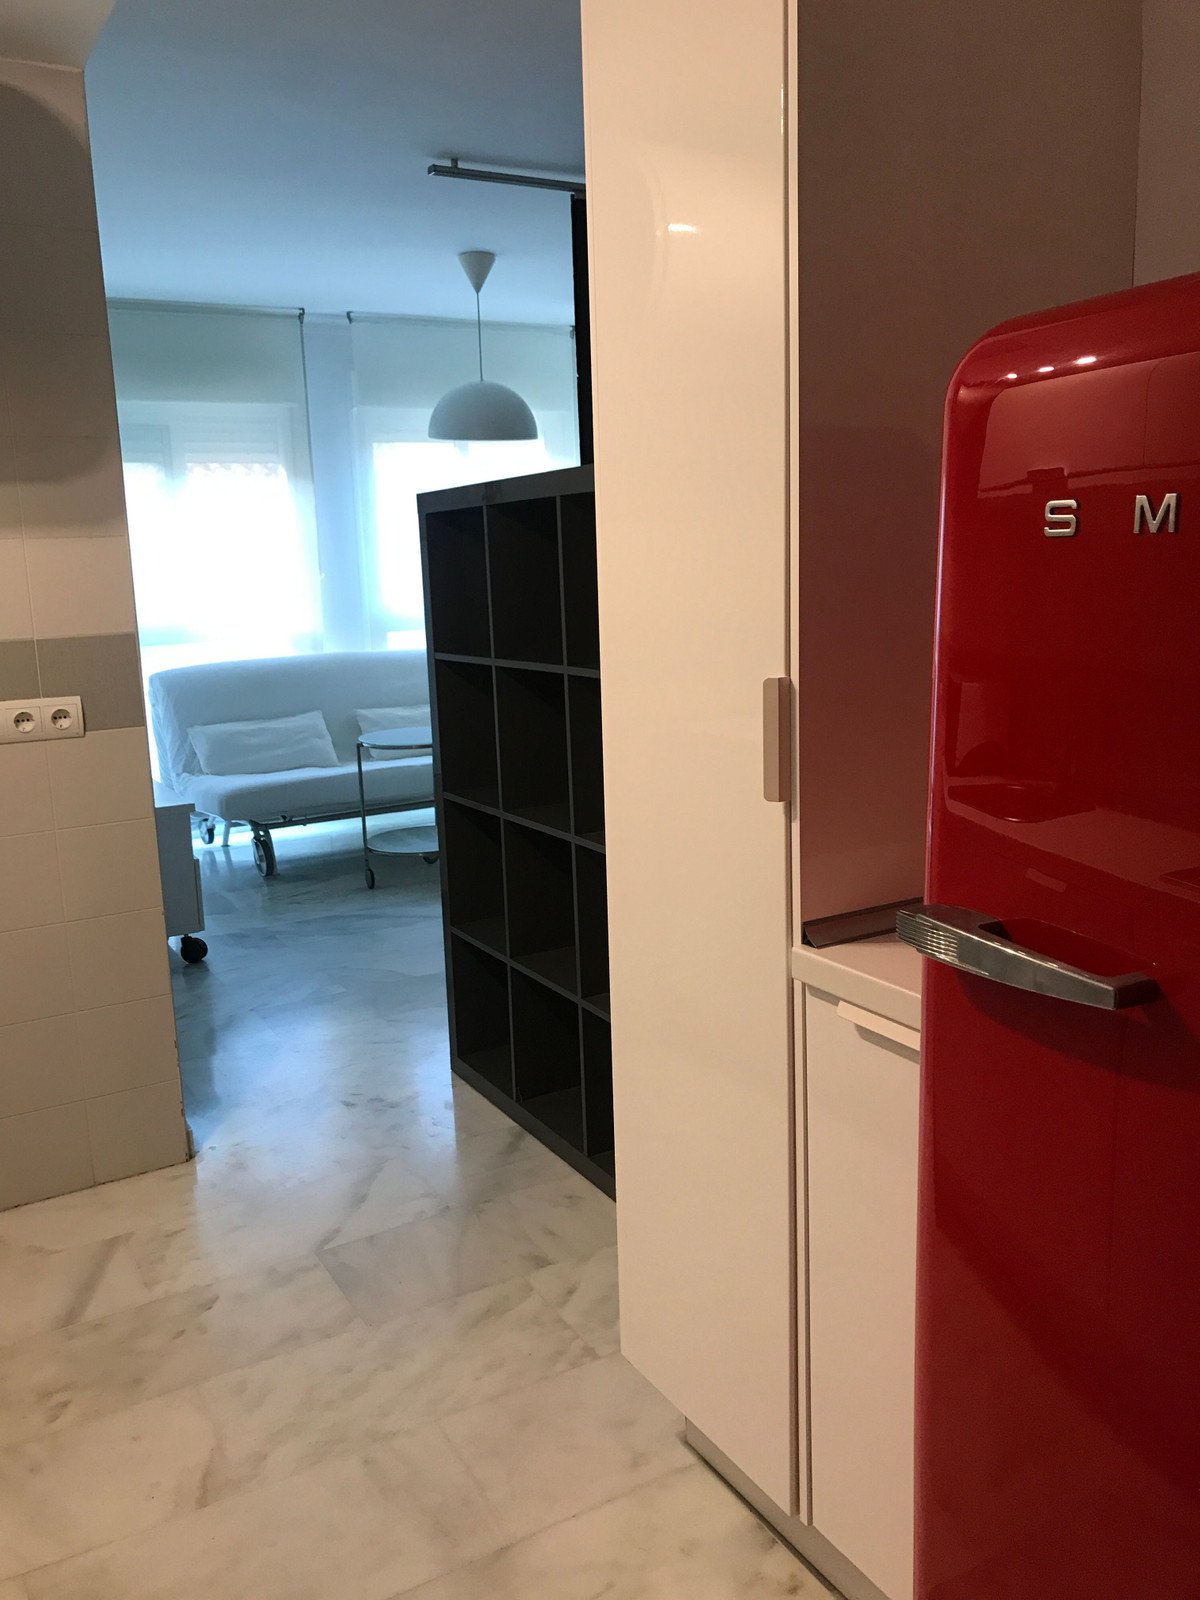 VERY MODERN  AND BEAUTIFUL APARTMENT  WALKING DISTANCE TO EL CORTE INGLES DE MIJAS  IN A VERY GOOD A,Spain